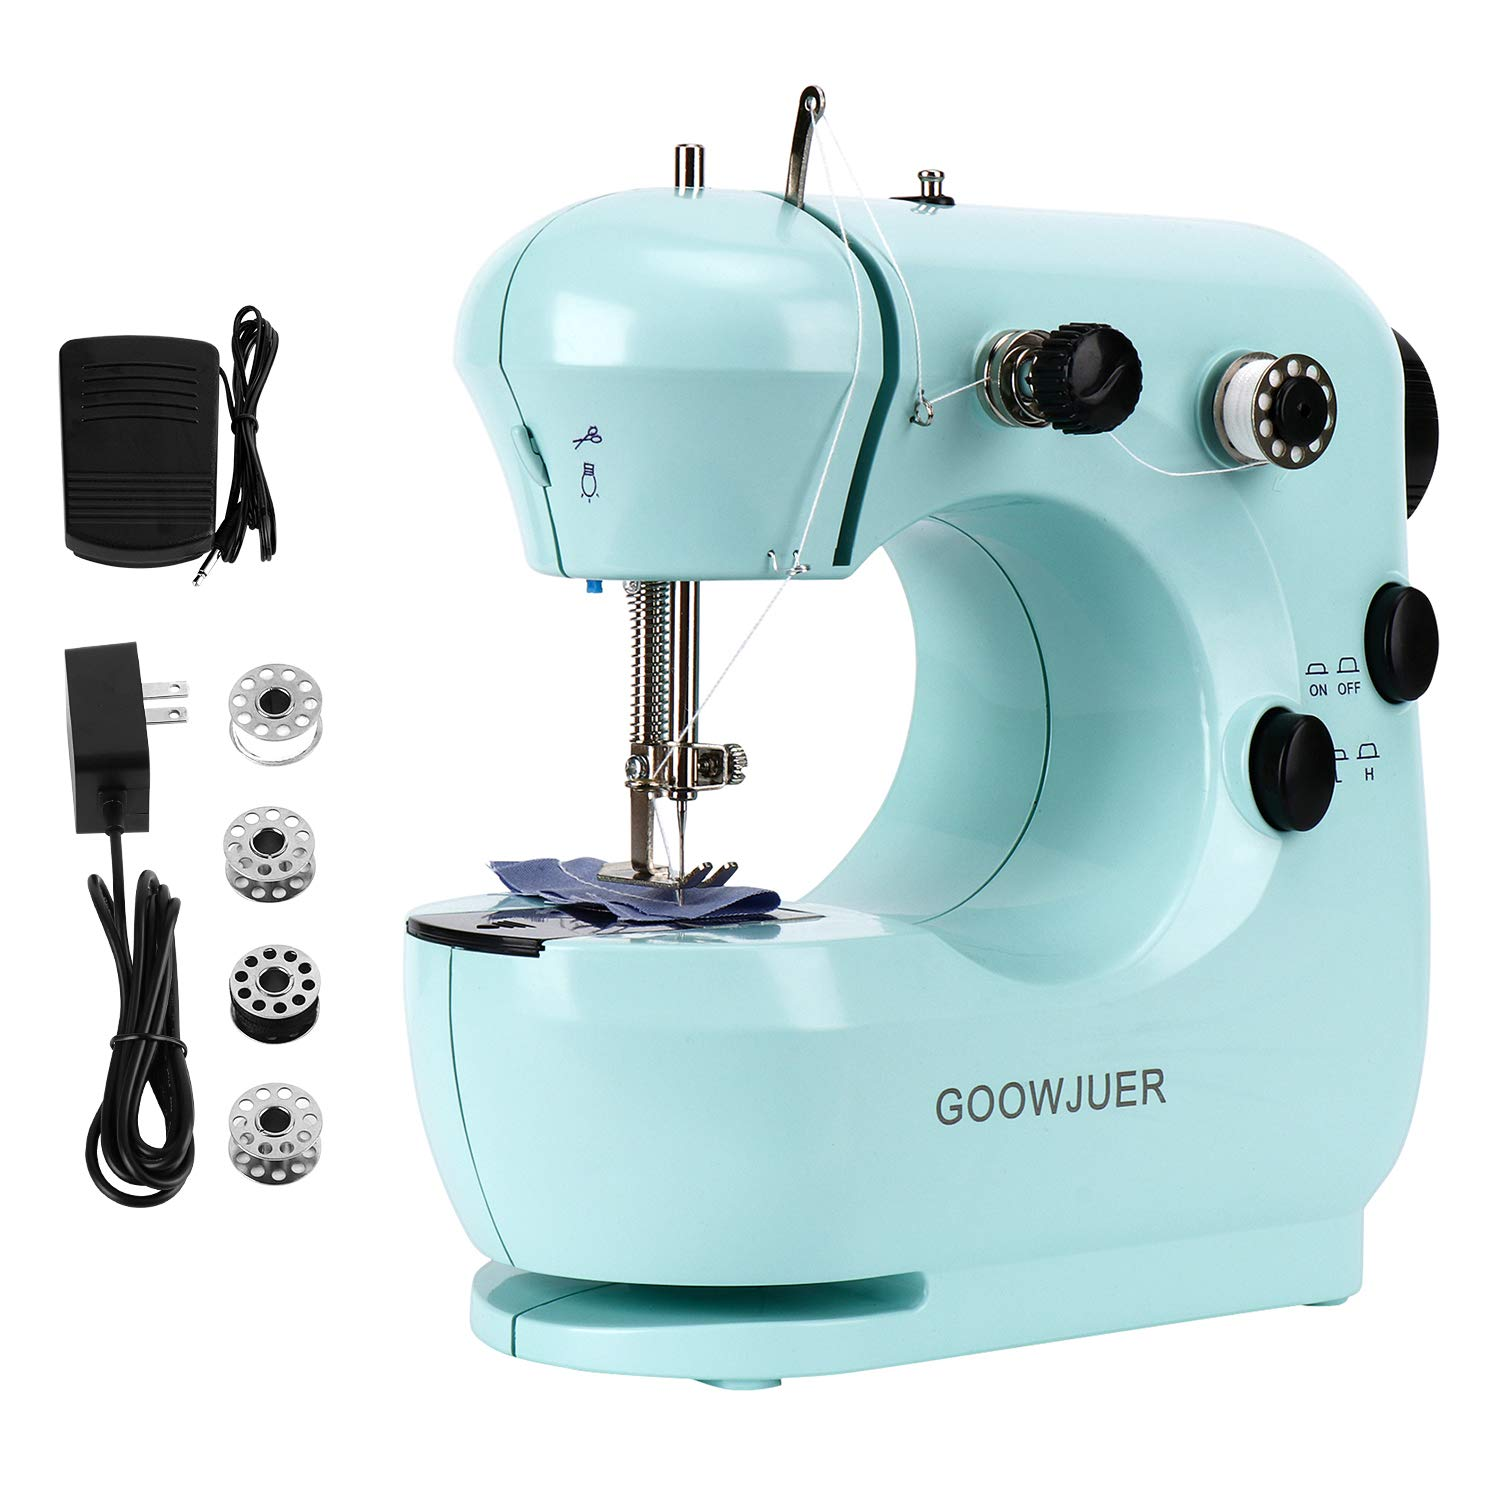 GOOWJUER Portable Mini Sewing MachineLightweight Electric Sewing Machines with Extension Table Double